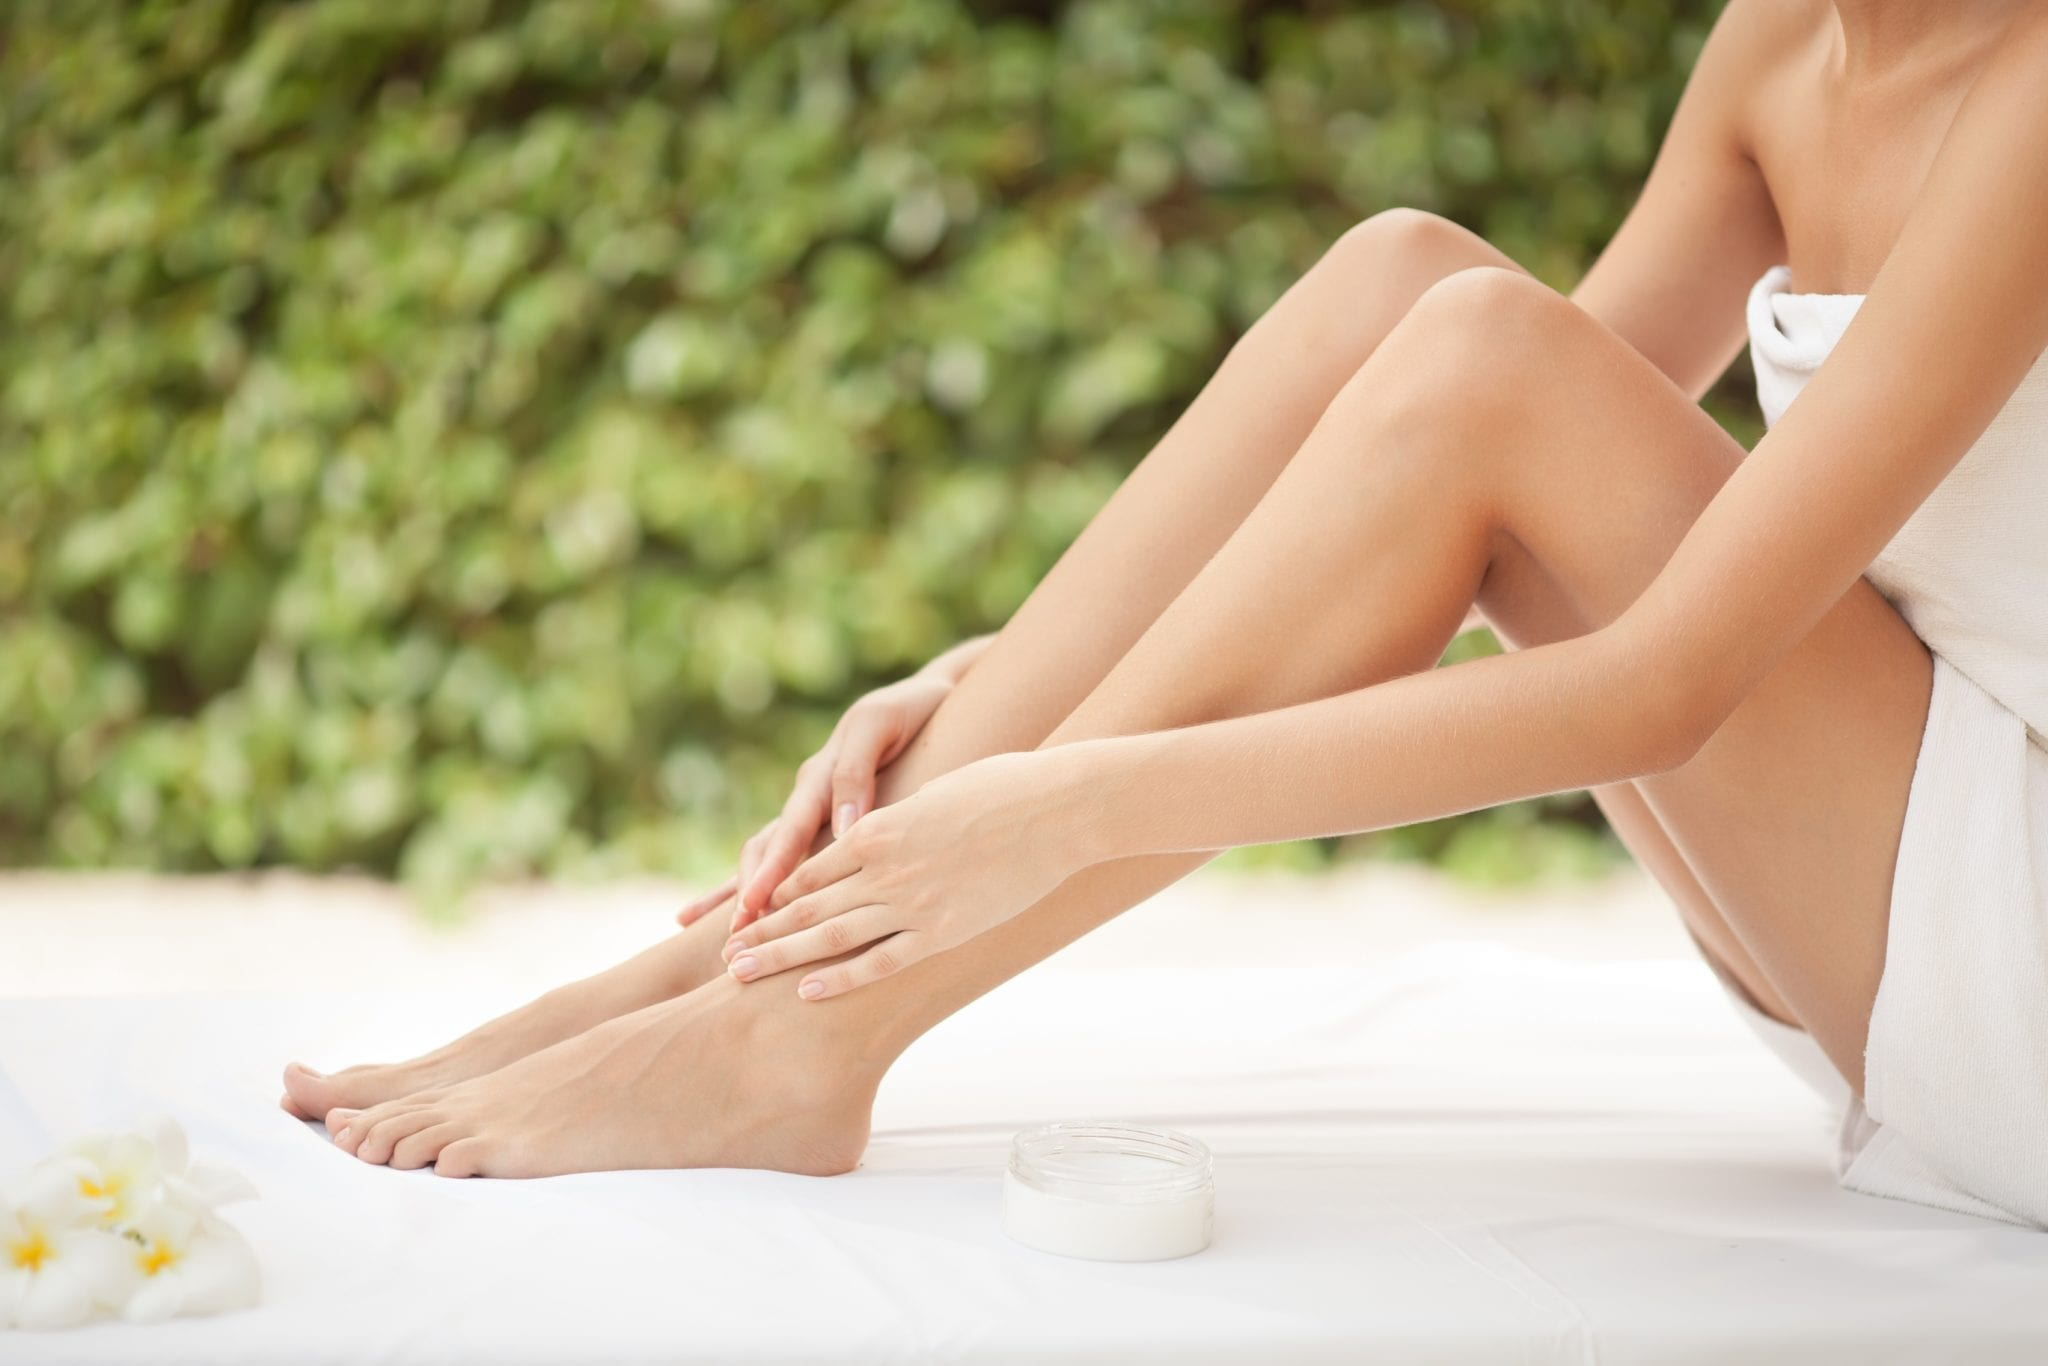 smooth skin Scottsdale's ultra smooth skin has a full-service salon which means you won't need to go anywhere else be styled, groomed, and pampered, all in one place treat your skin to a rejuvenating facial from this salon.